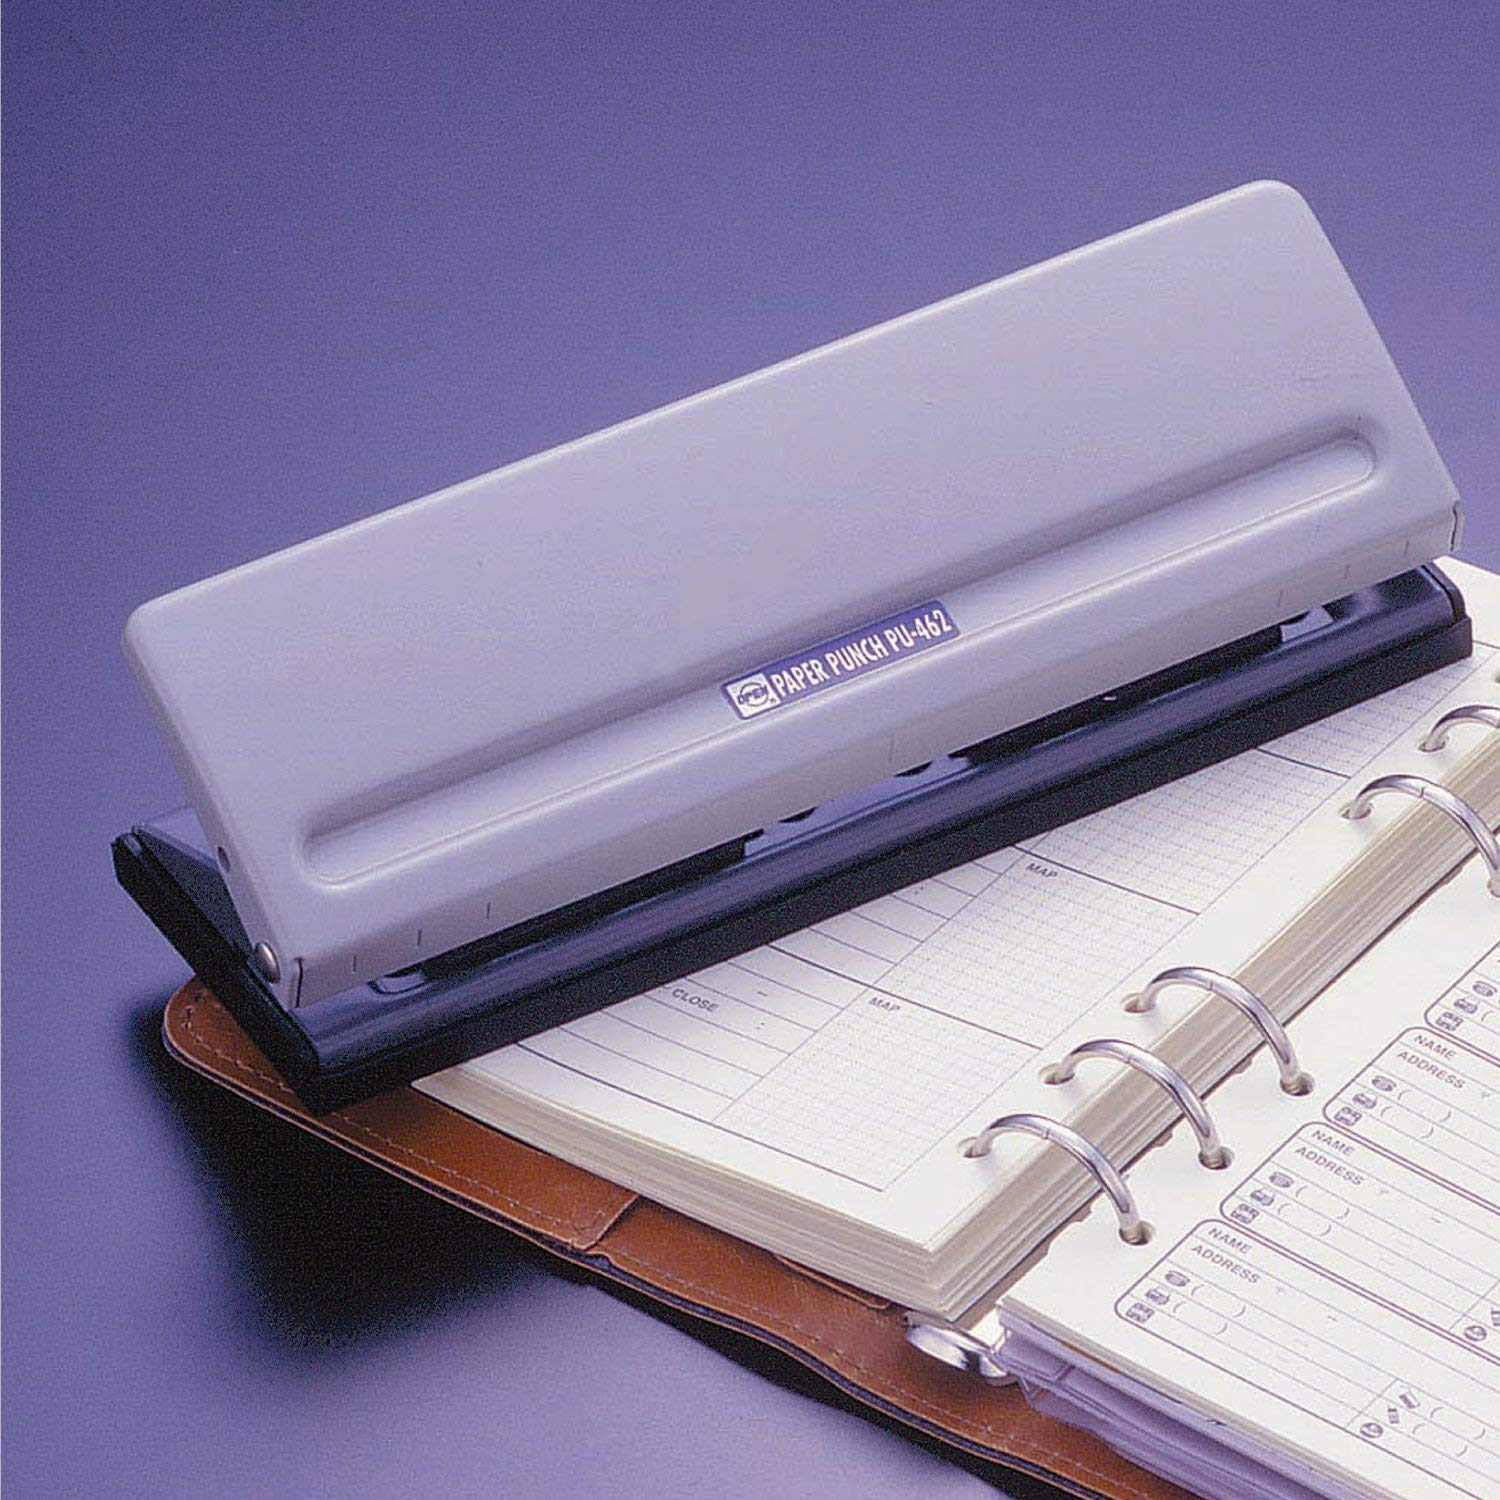 Open industrial 6 hole punch (Mobile)  (1, A)